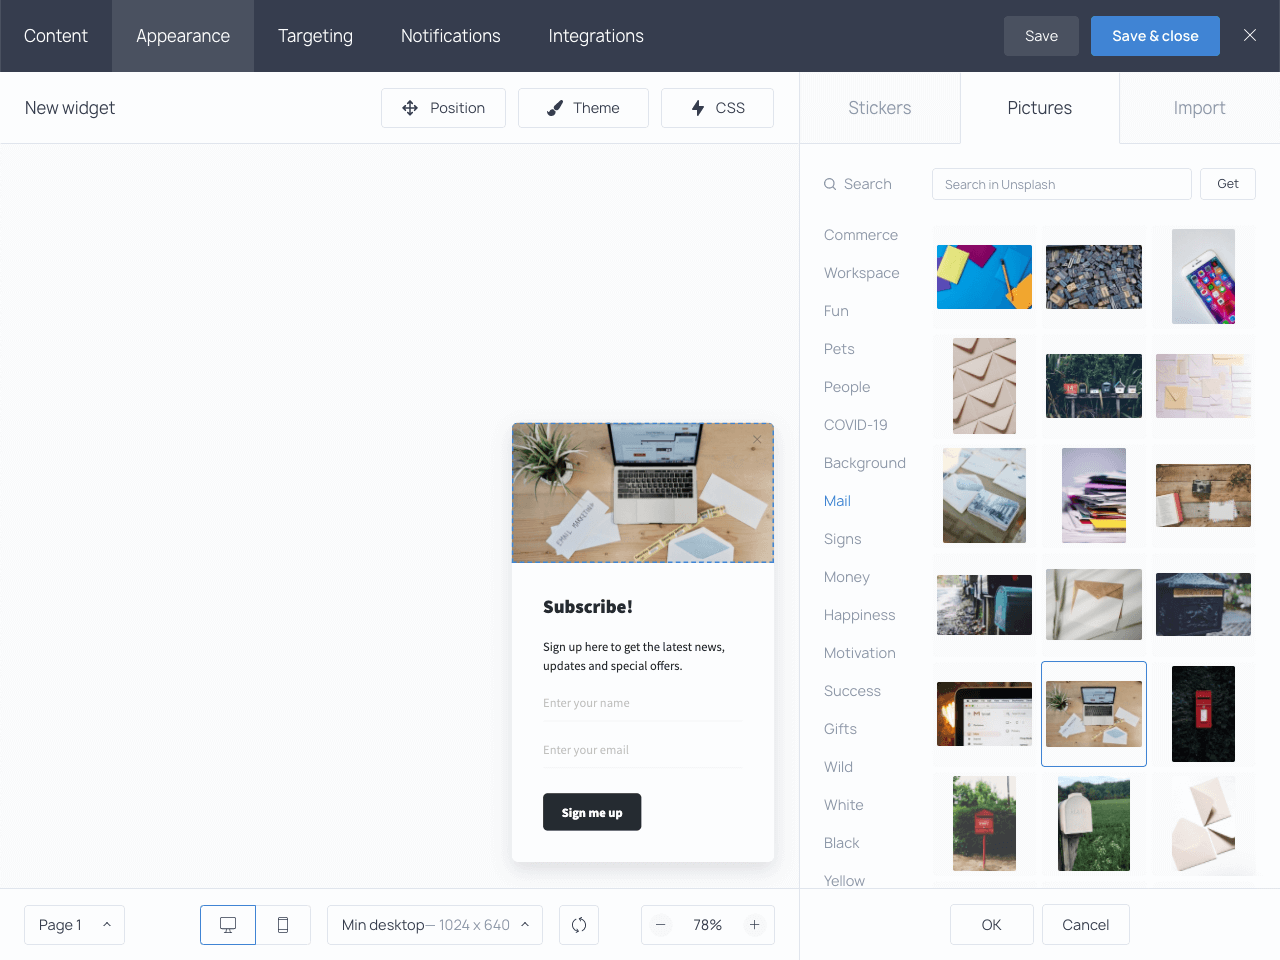 Choosing images from an extensive picture gallery in the Getsitecontrol admin dashboard